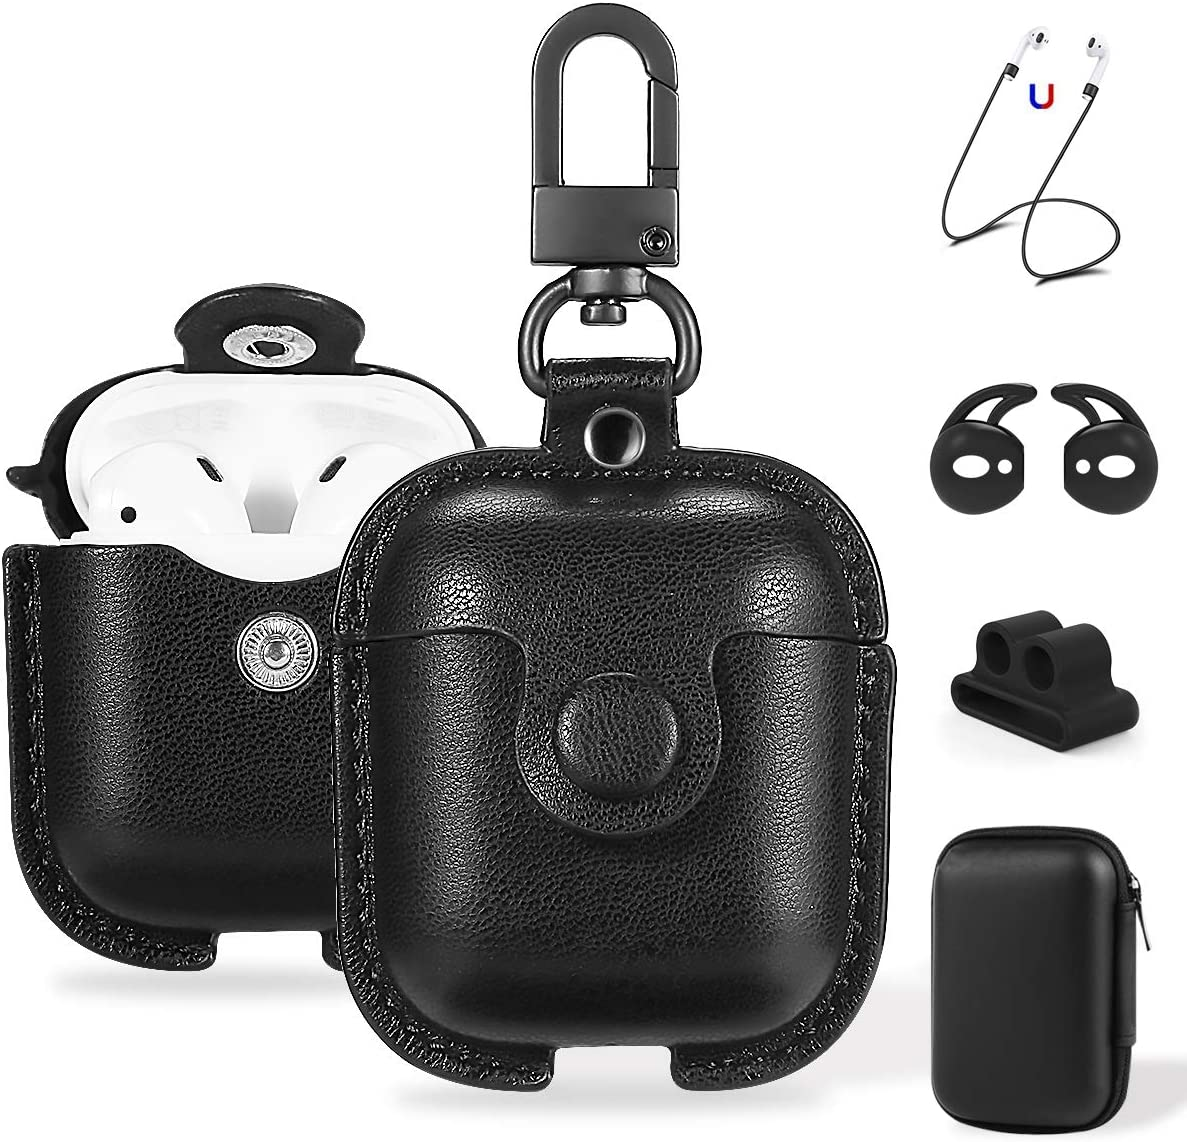 Airpods Case Cute  On Sale for Black Friday Gift for Men Women Personalized Leather Airpods Pro Case with Keychain,Custom Airpods Pro Cover